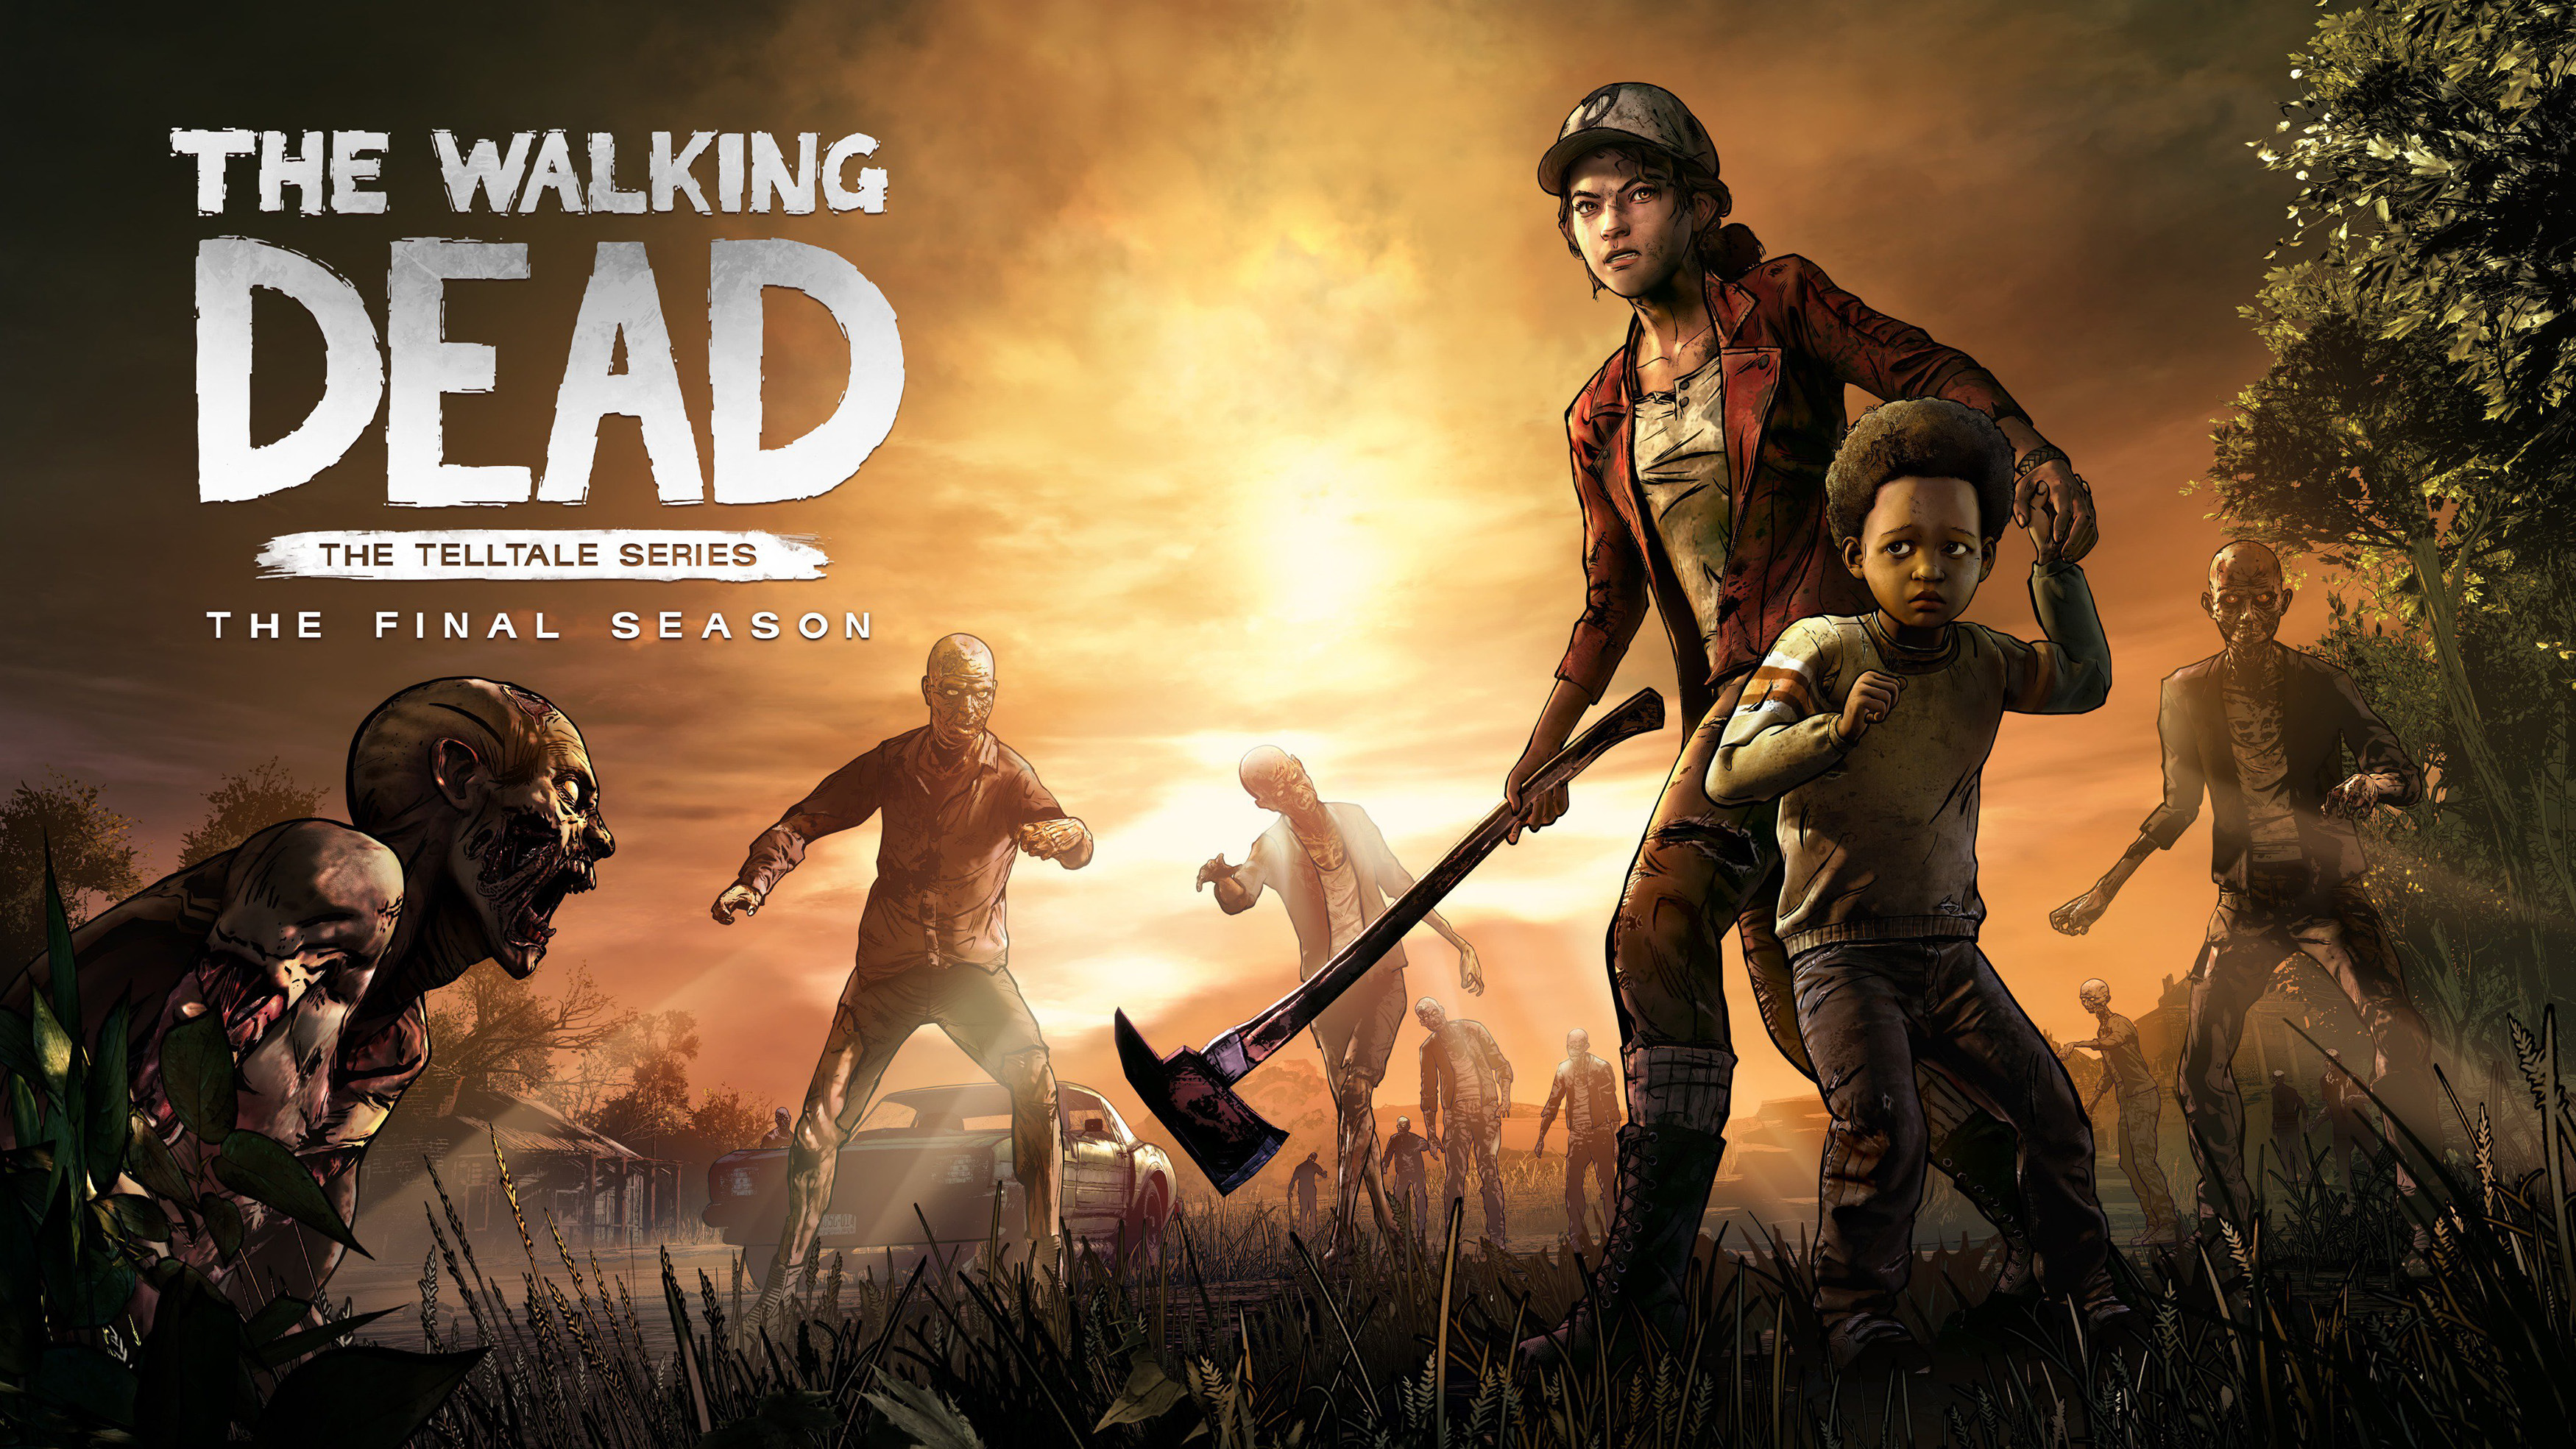 The Walking Dead: Final Season | Jogo da Telltale Games será finalizado